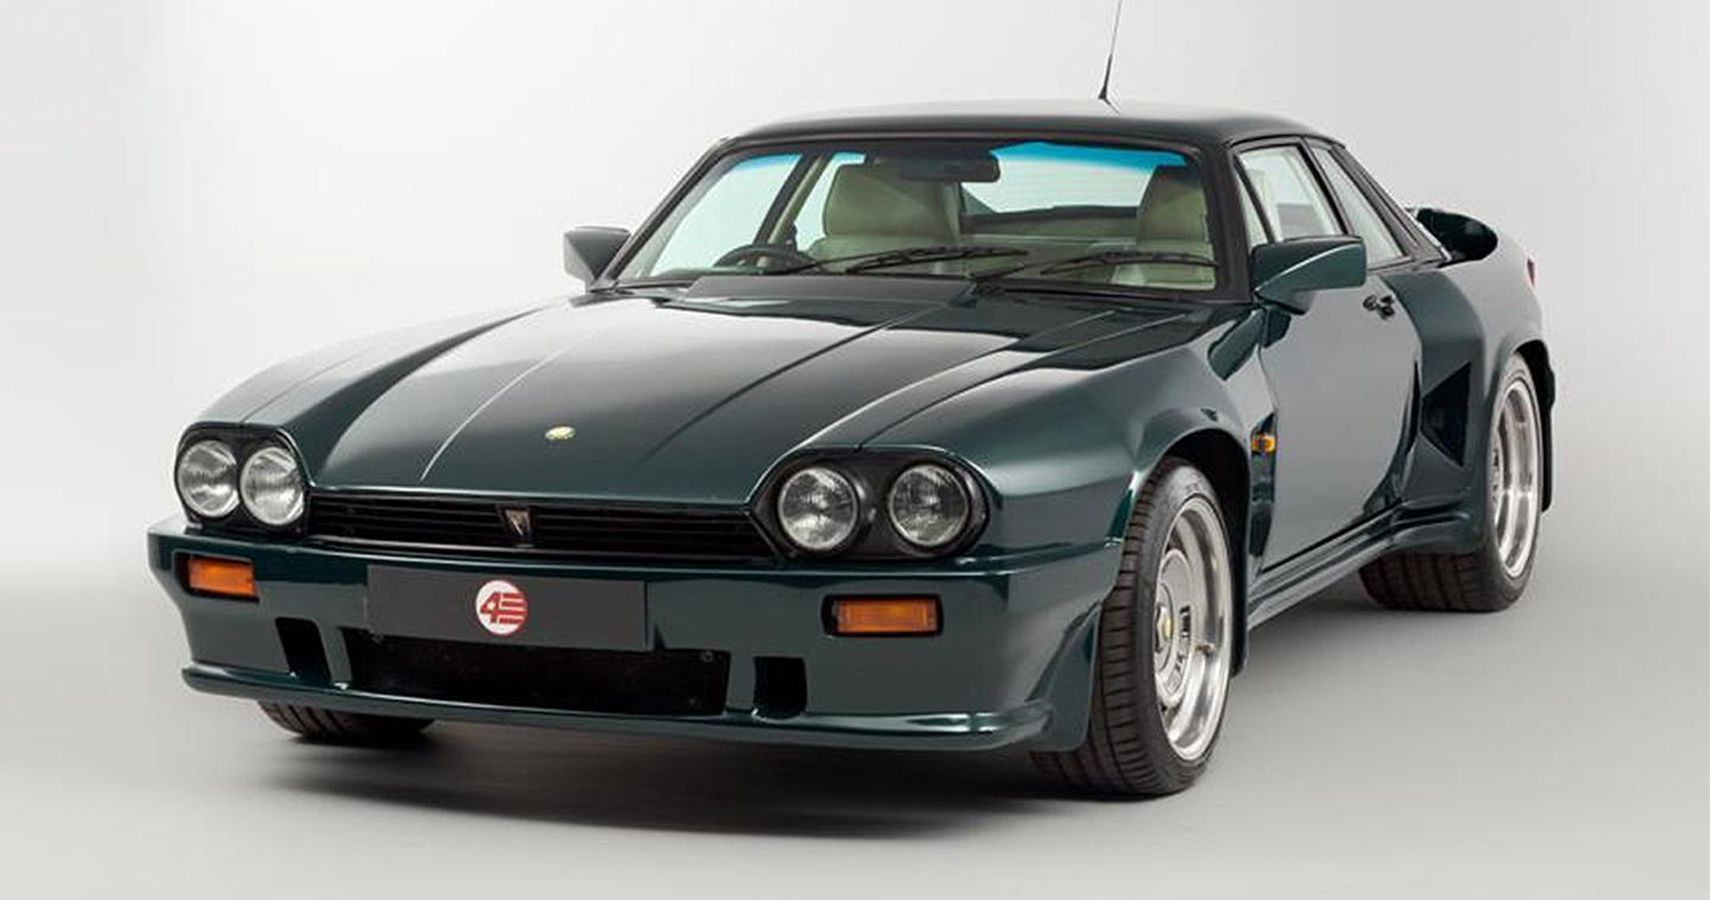 A Rare Jaguar XJS Modified By Lister Was Sold At Auction